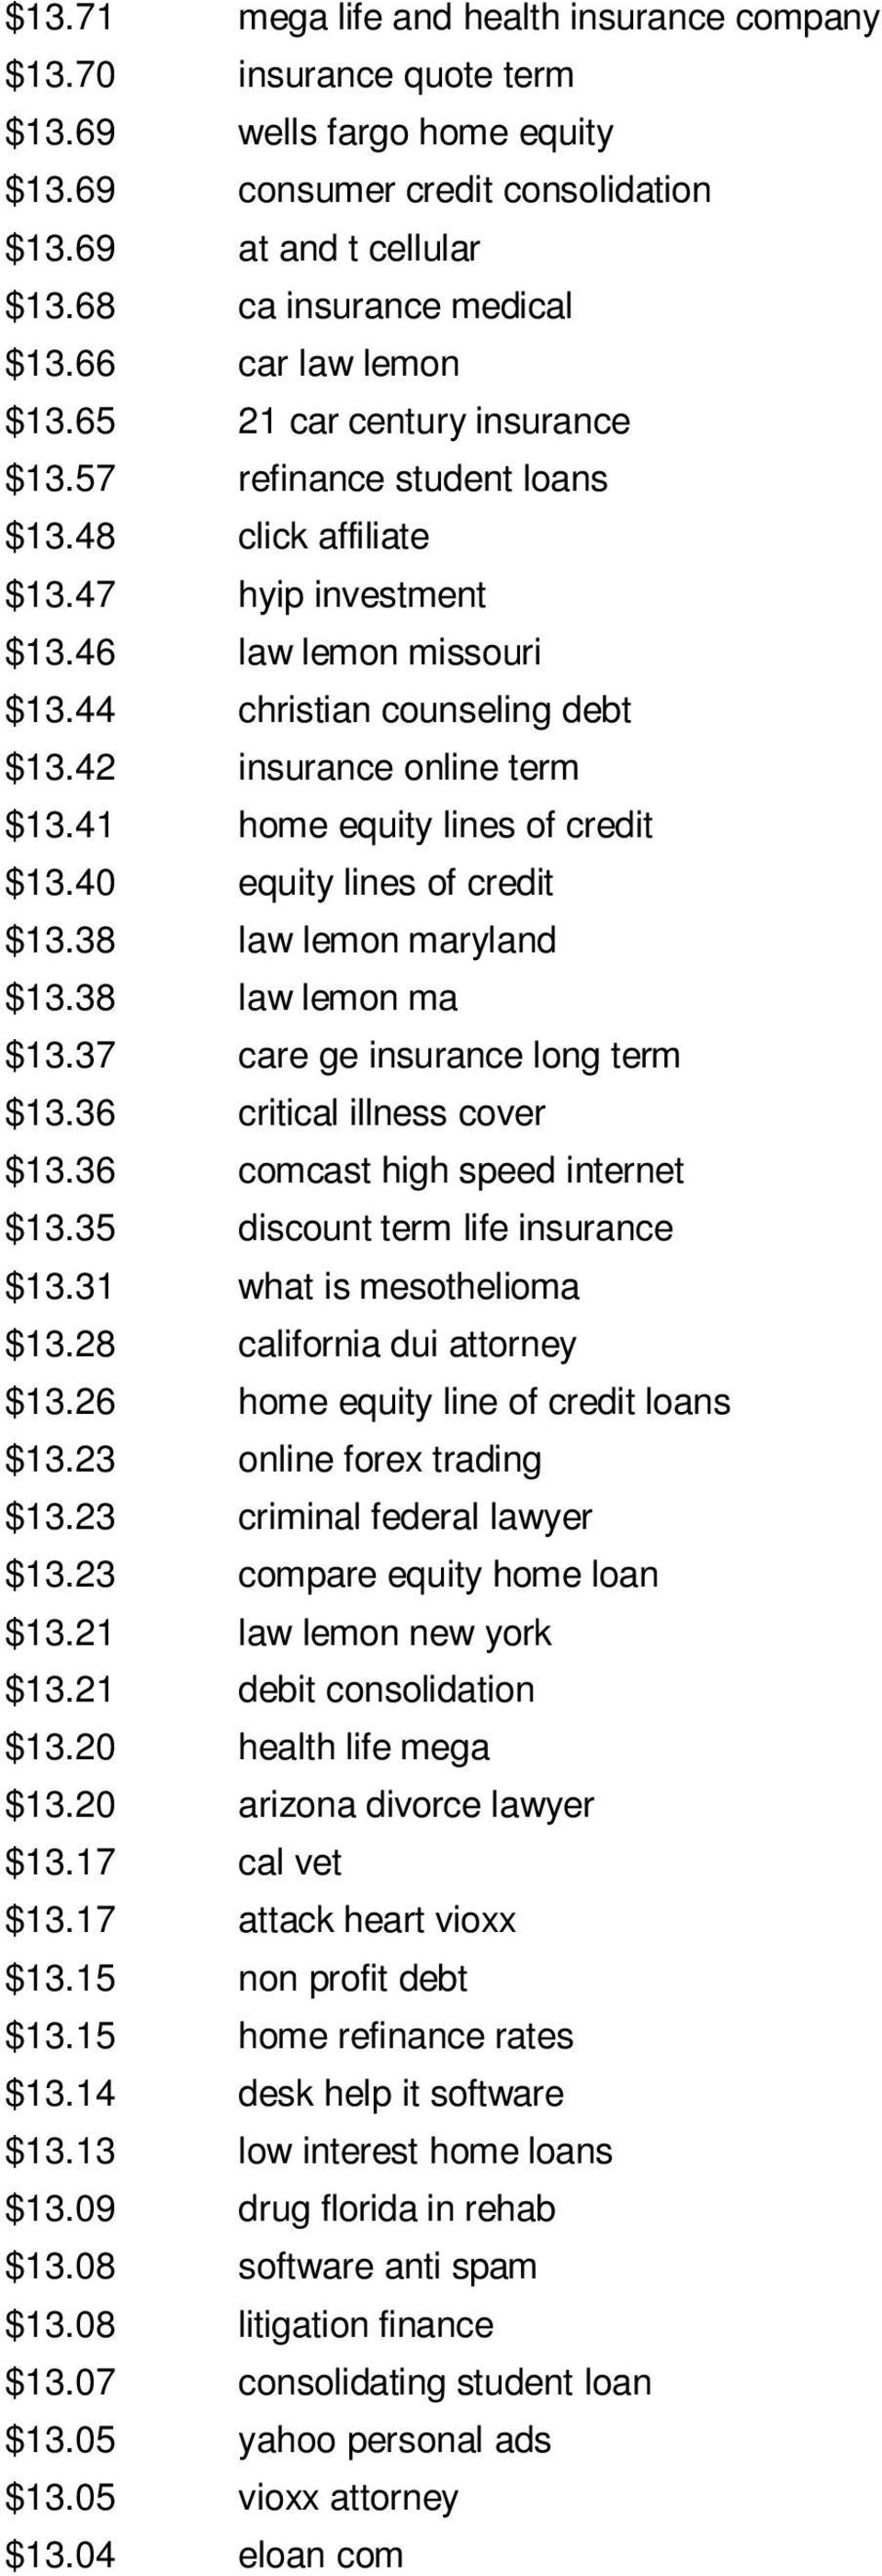 42 insurance online term $13.41 home equity lines of credit $13.40 equity lines of credit $13.38 law lemon maryland $13.38 law lemon ma $13.37 care ge insurance long term $13.